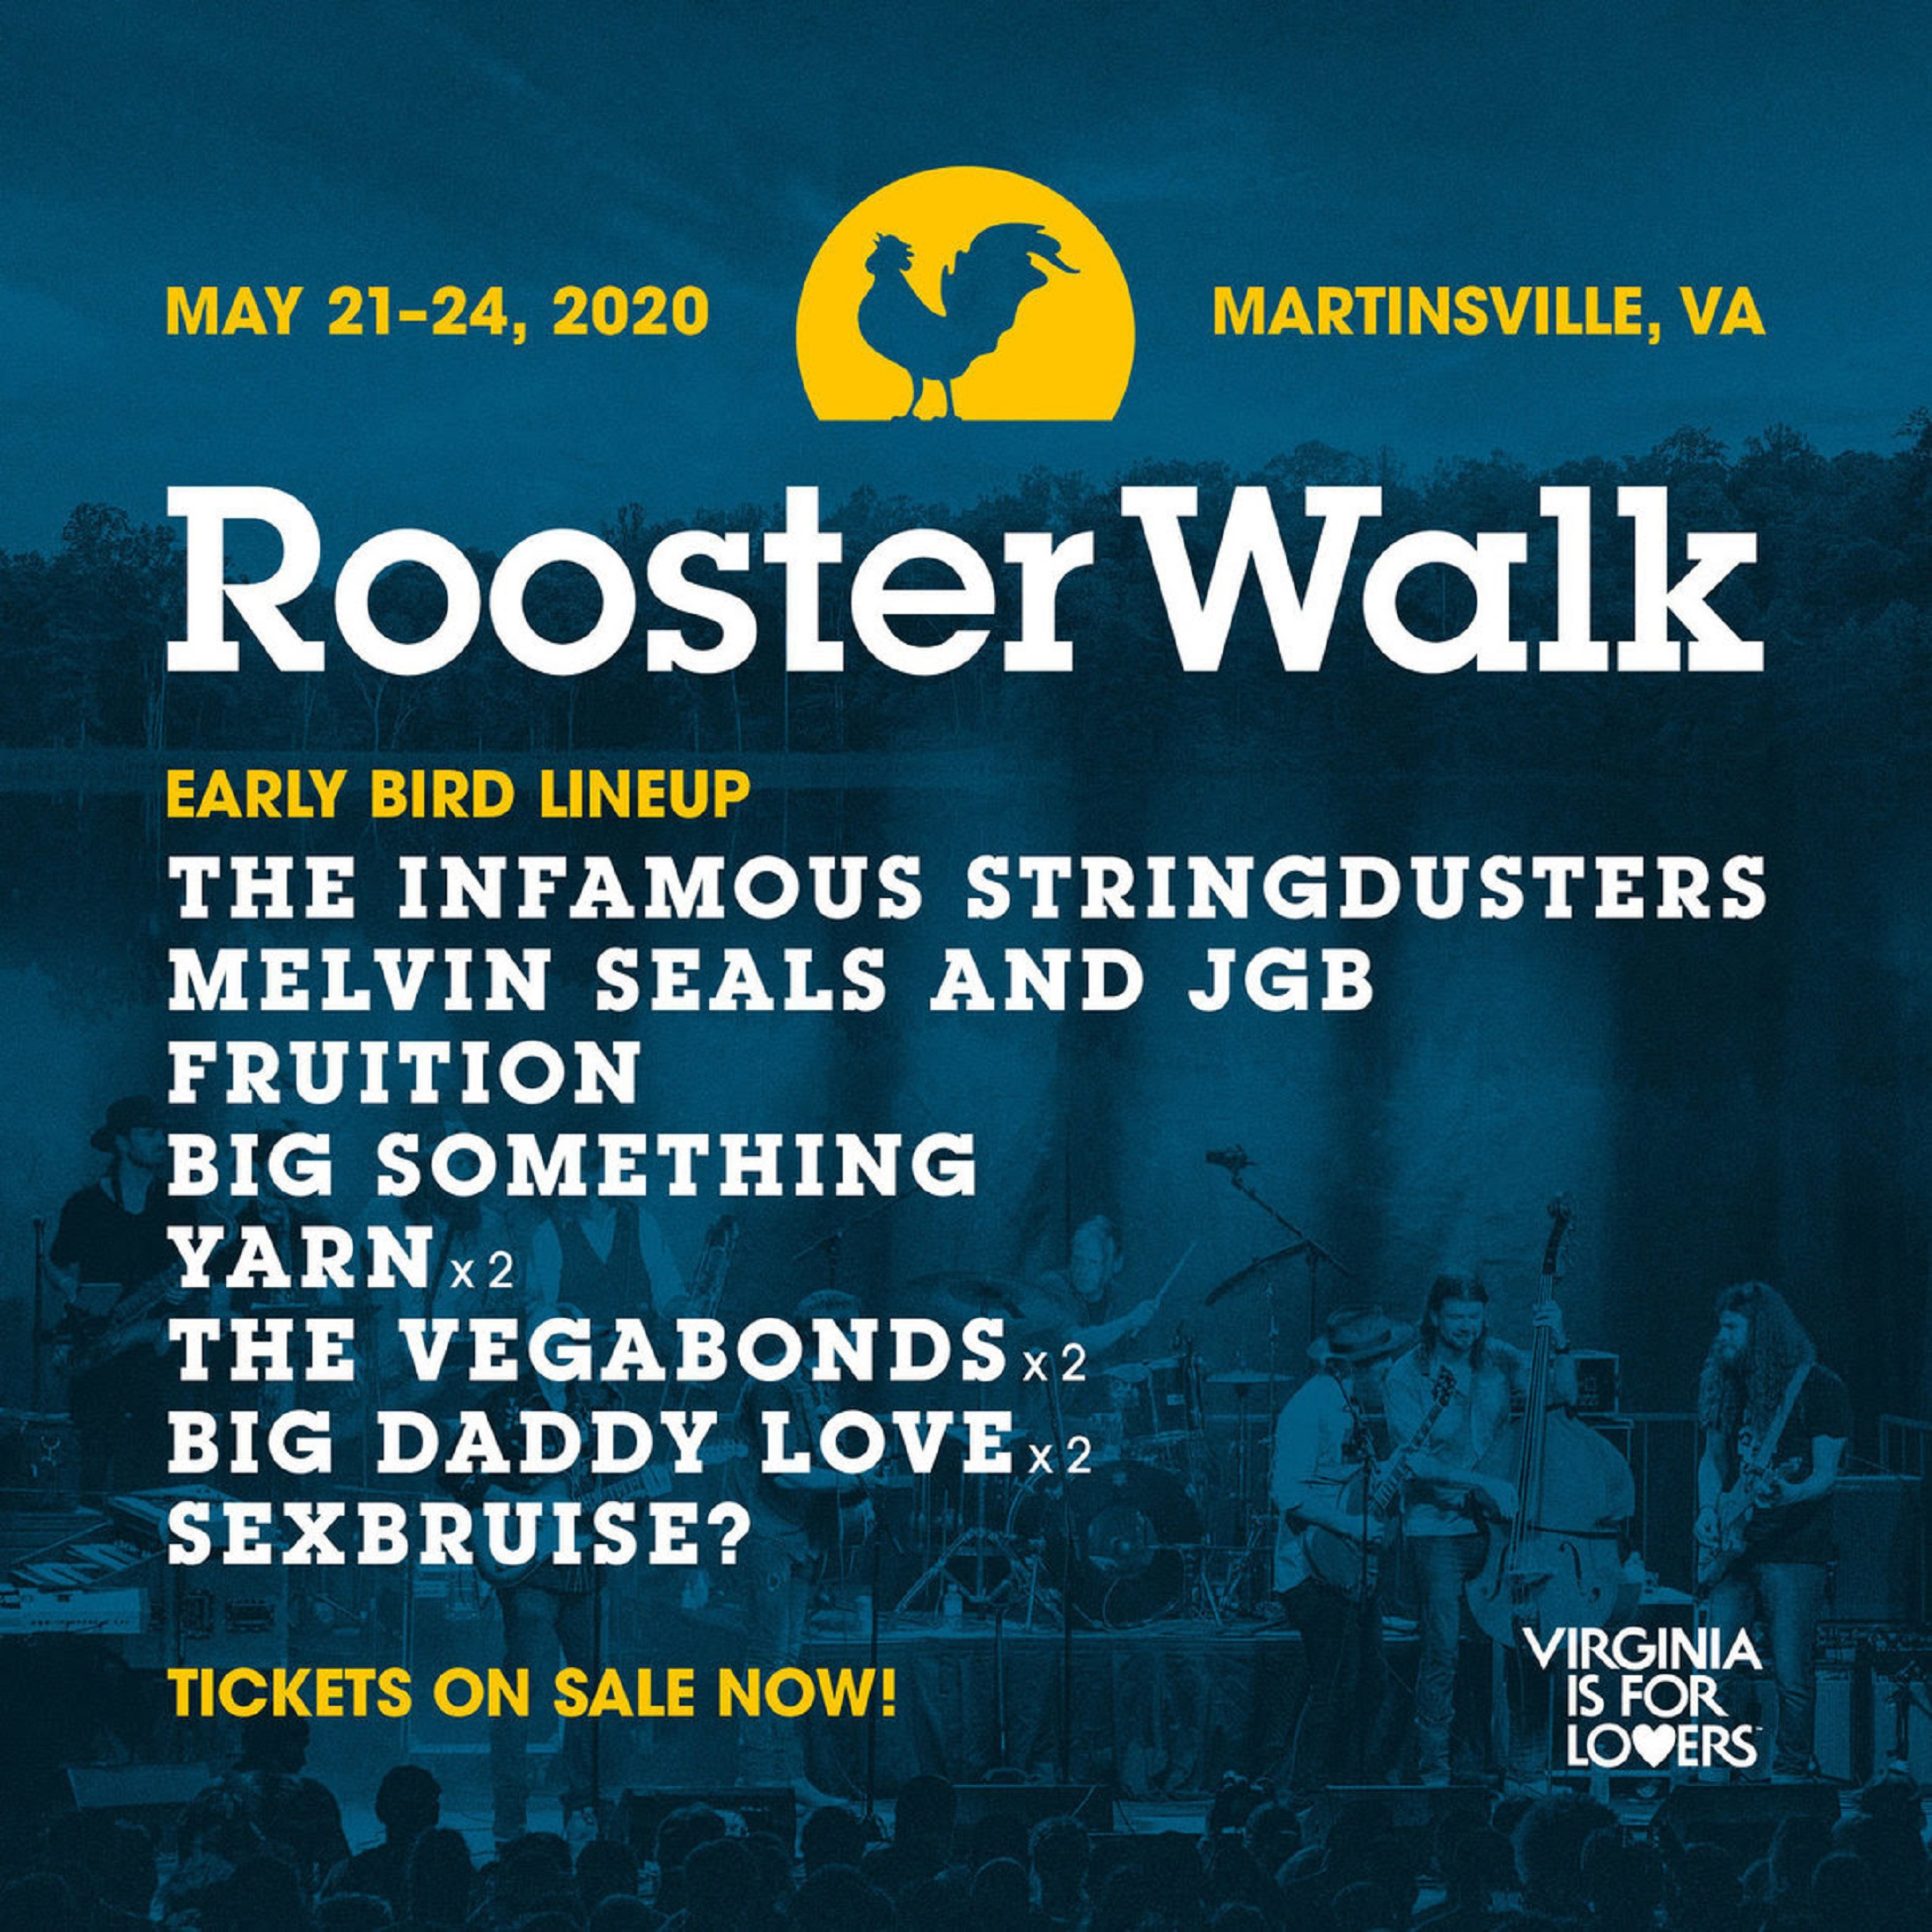 Infamous Stringdusters + Melvin Seals + Fruition top early Rooster Walk lineup